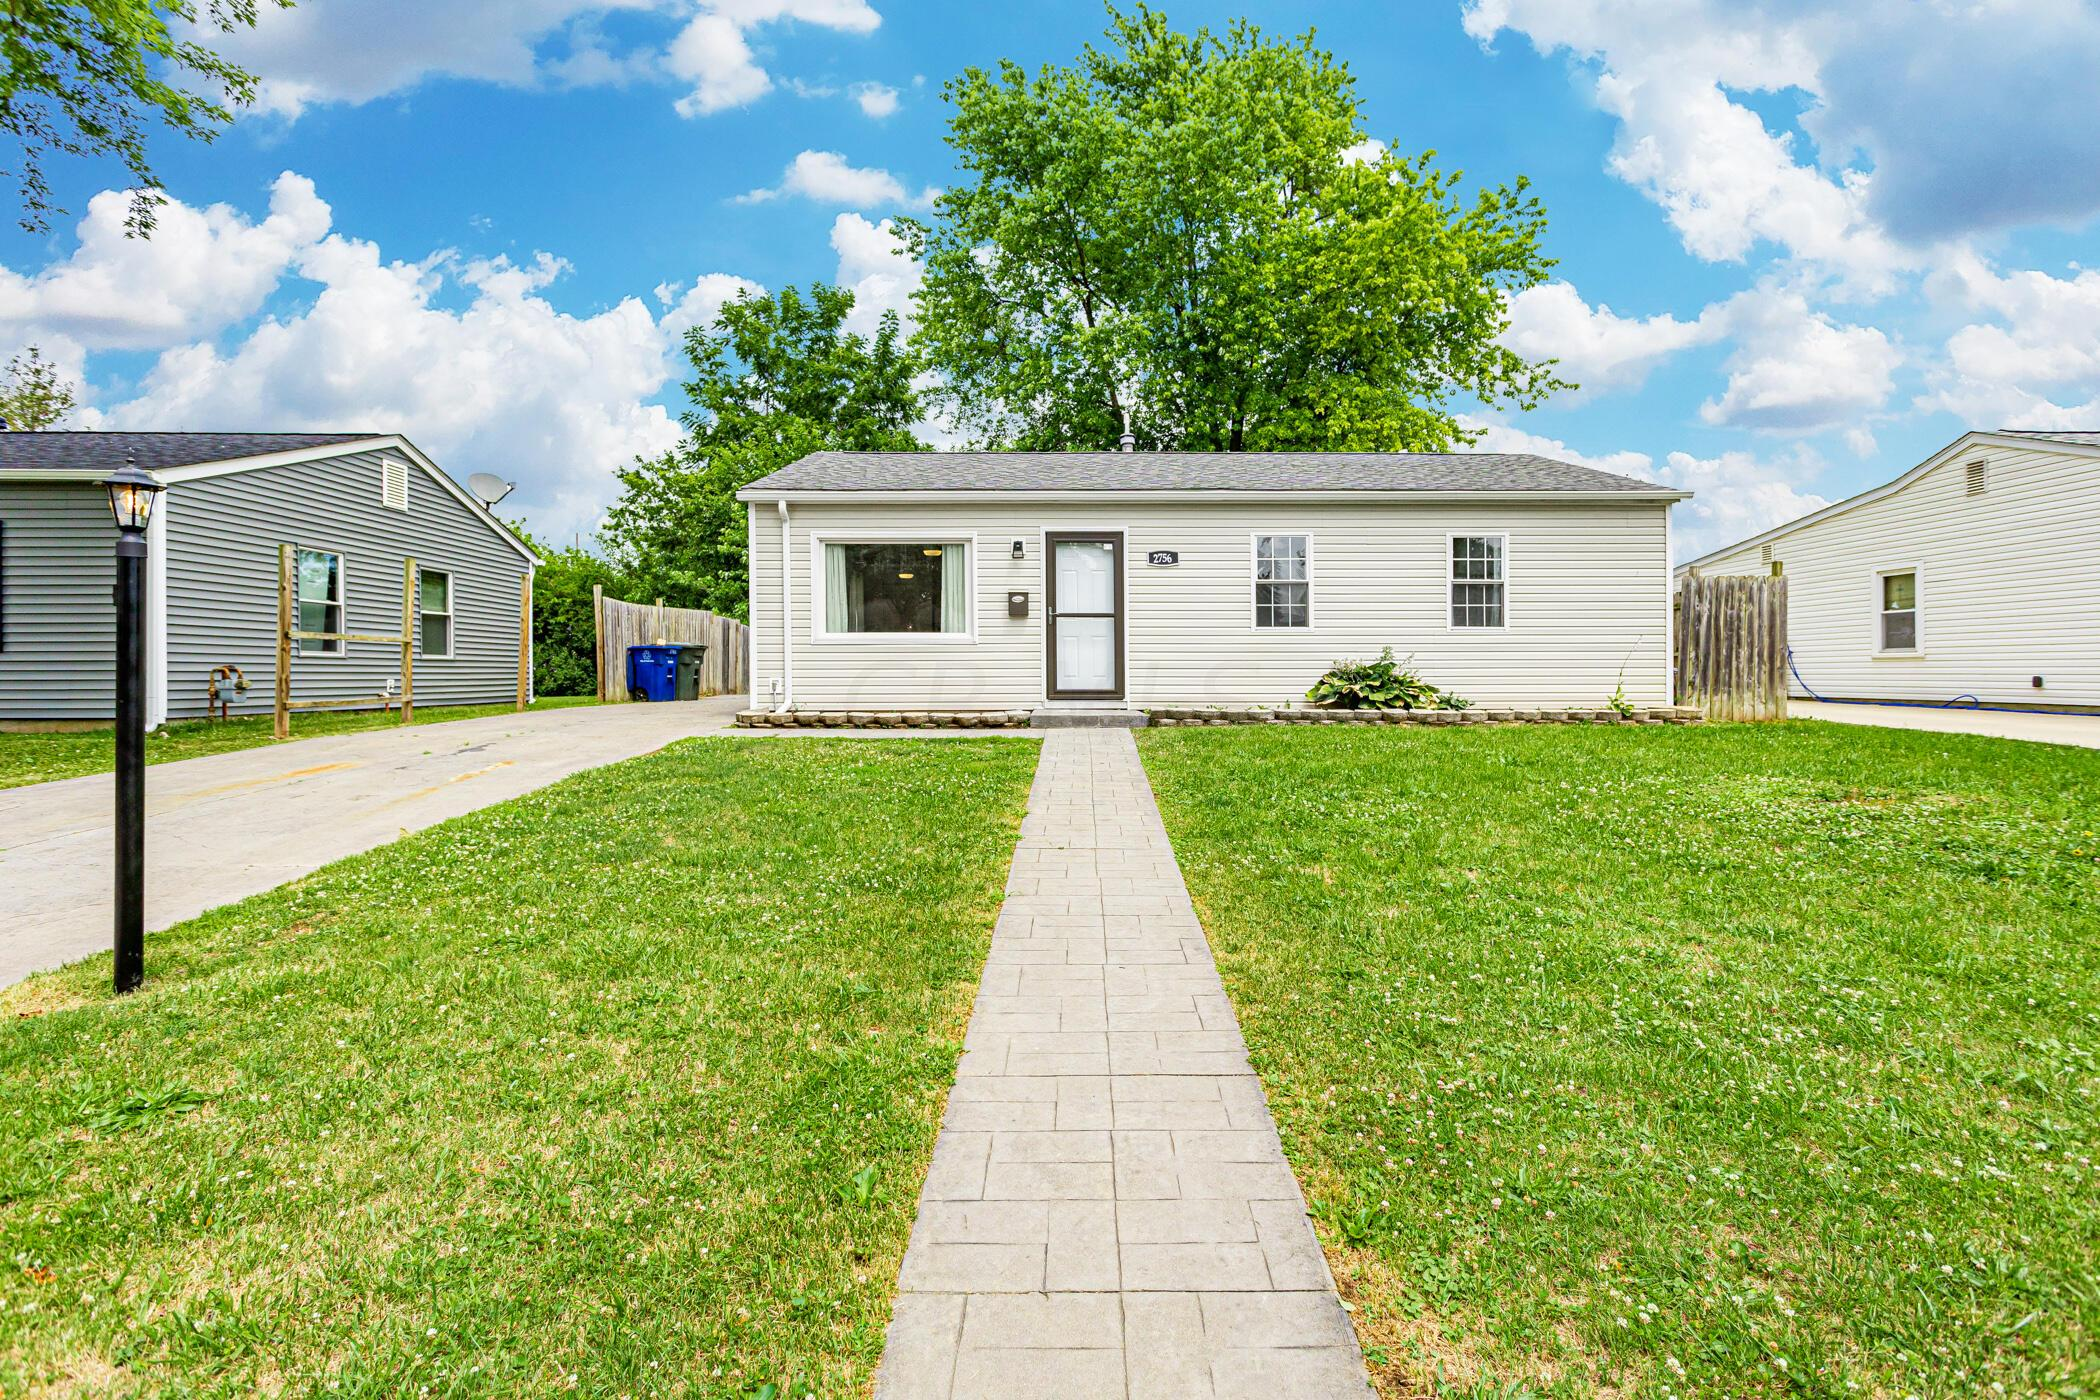 2756 Dolby Dr, Columbus, OH 43207_018